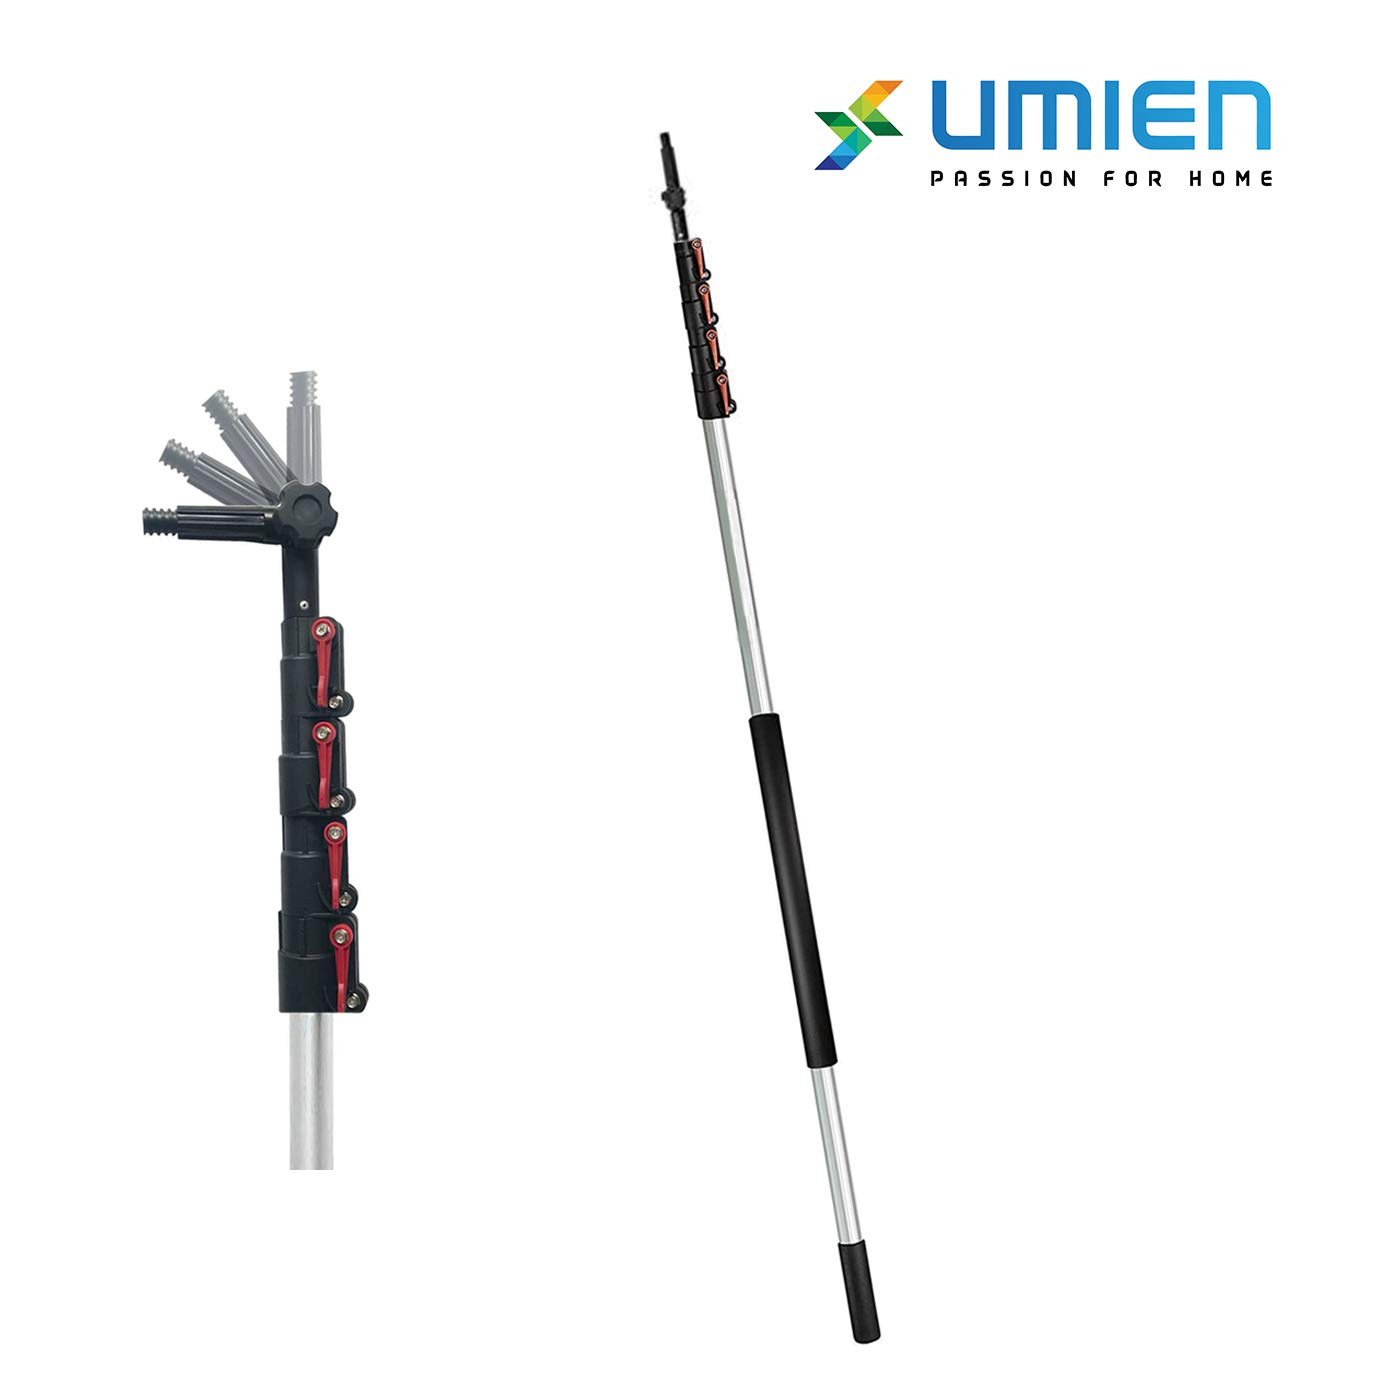 6-24 Foot Telescopic Extension Pole - Multi Functional Pole, Paint Roller, Light Bulb Changer, Duster Pole, Antenna Pole, Hanging Lights, Window and Gutter Cleaning - Includes Free Feather Duster by UMIEN